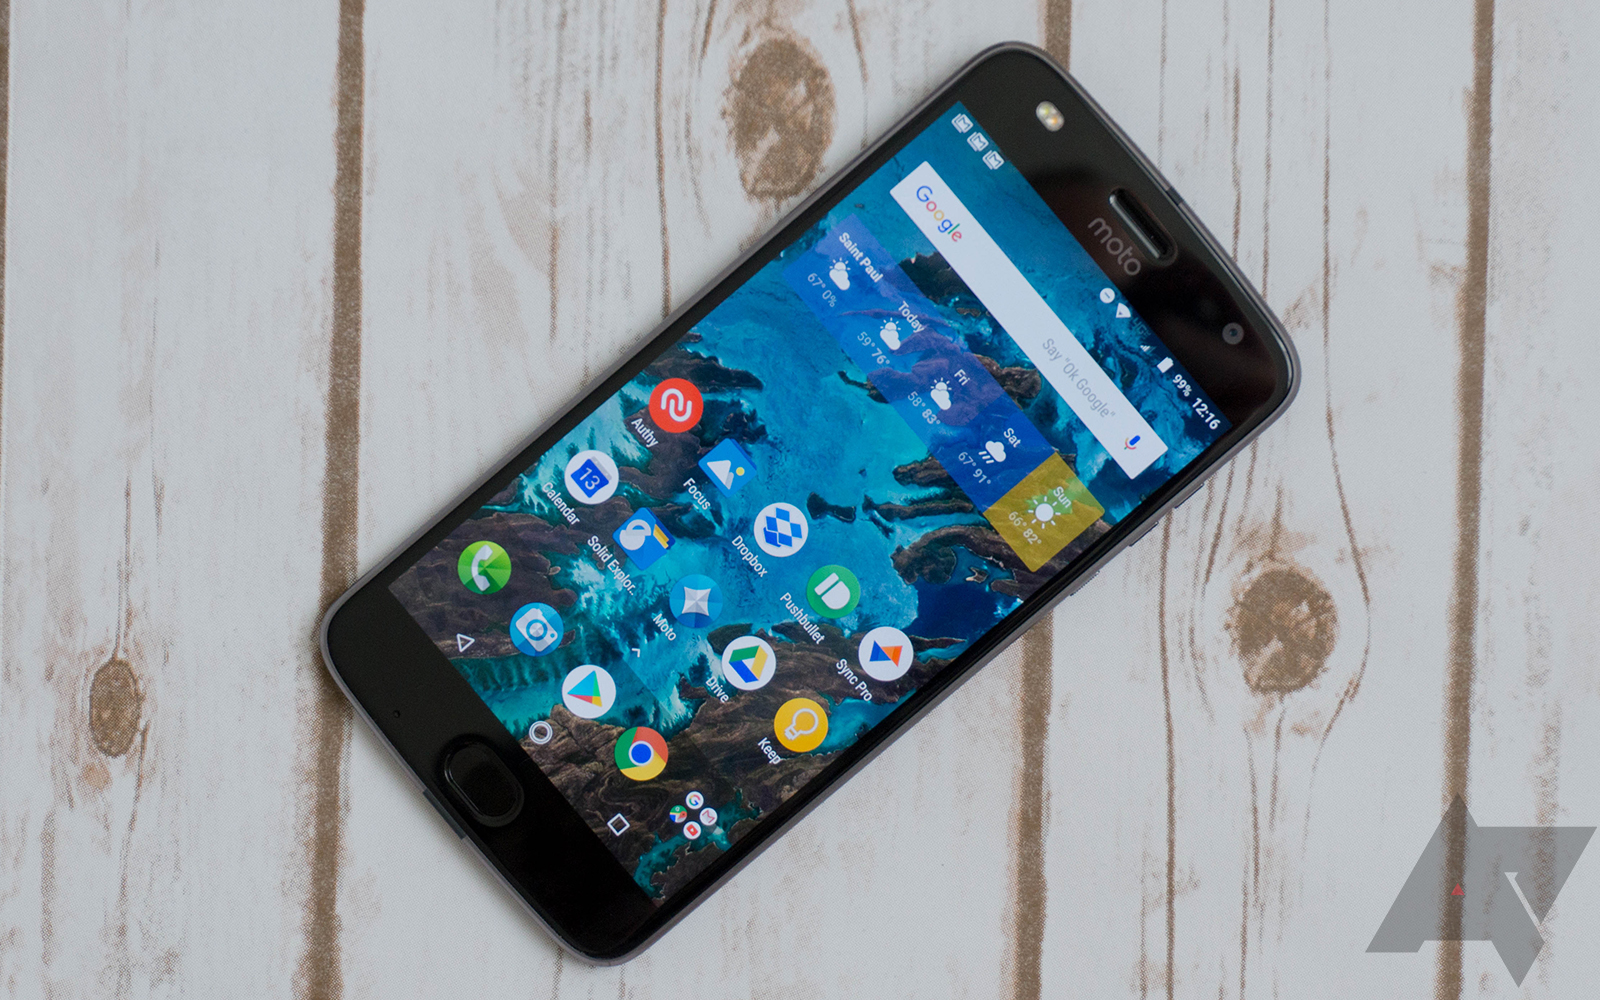 Moto Z2 Play review: Not a bad phone, but still a step backward